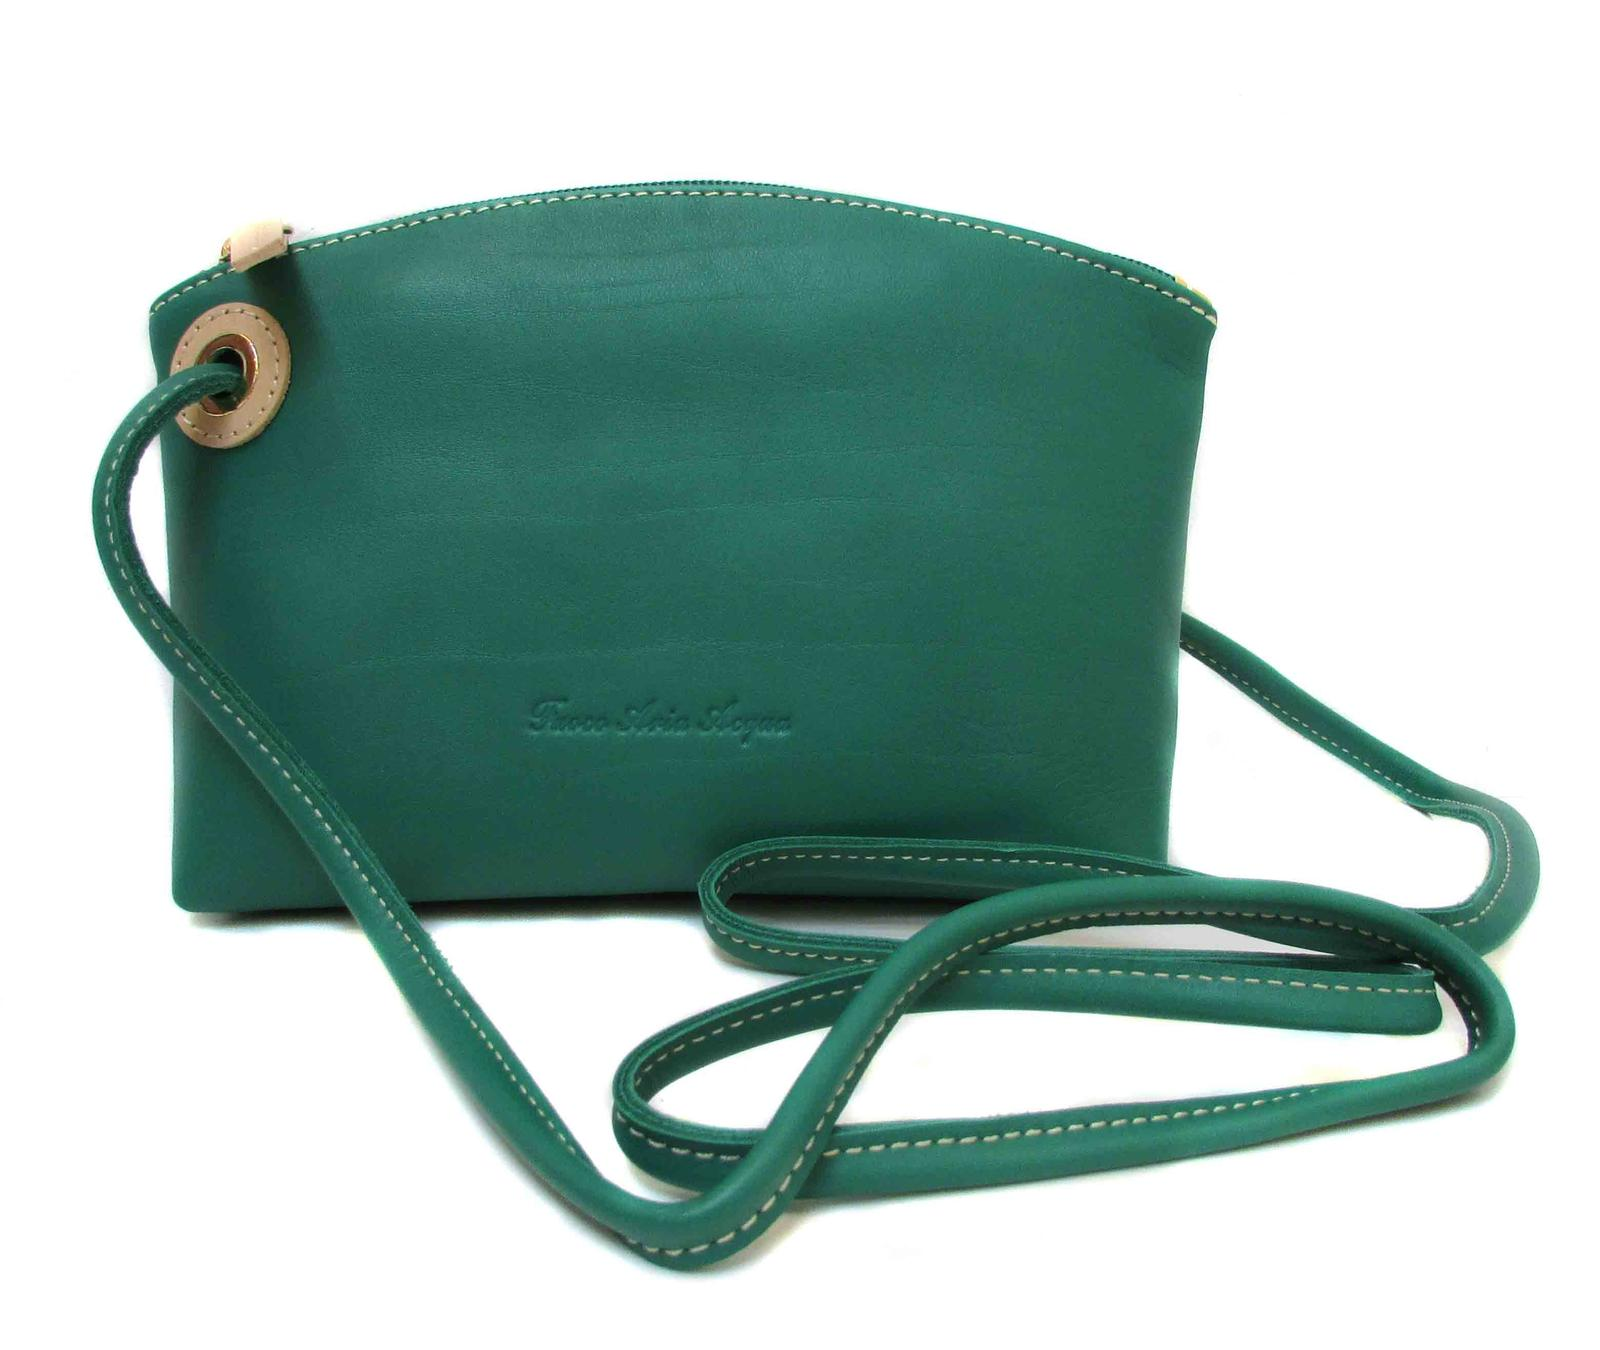 Small handbag with extension strap